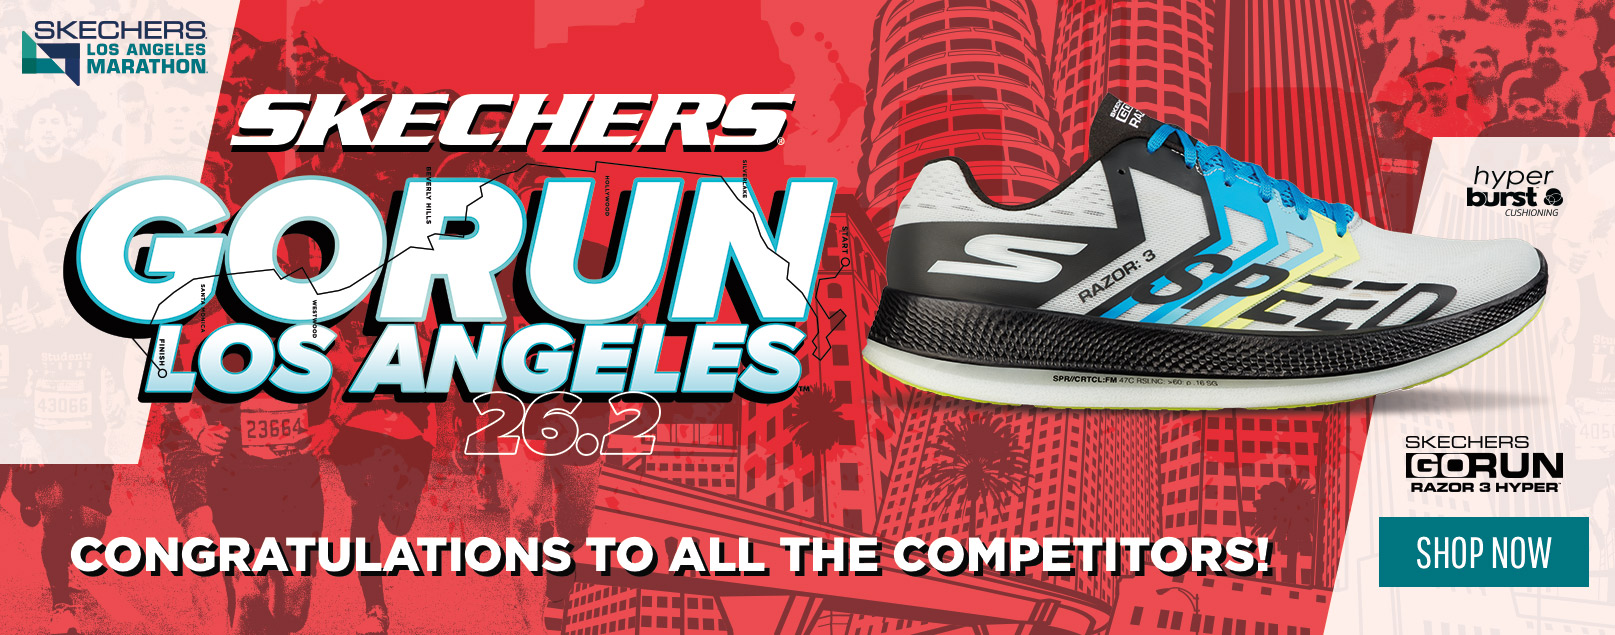 Congratulations to all the competitors of the 2019 Skechers Performance Los Angeles Marathon 2019.  The sponsors of the race present a commemorative collection of shoes and apparel with signature LA colors and details.